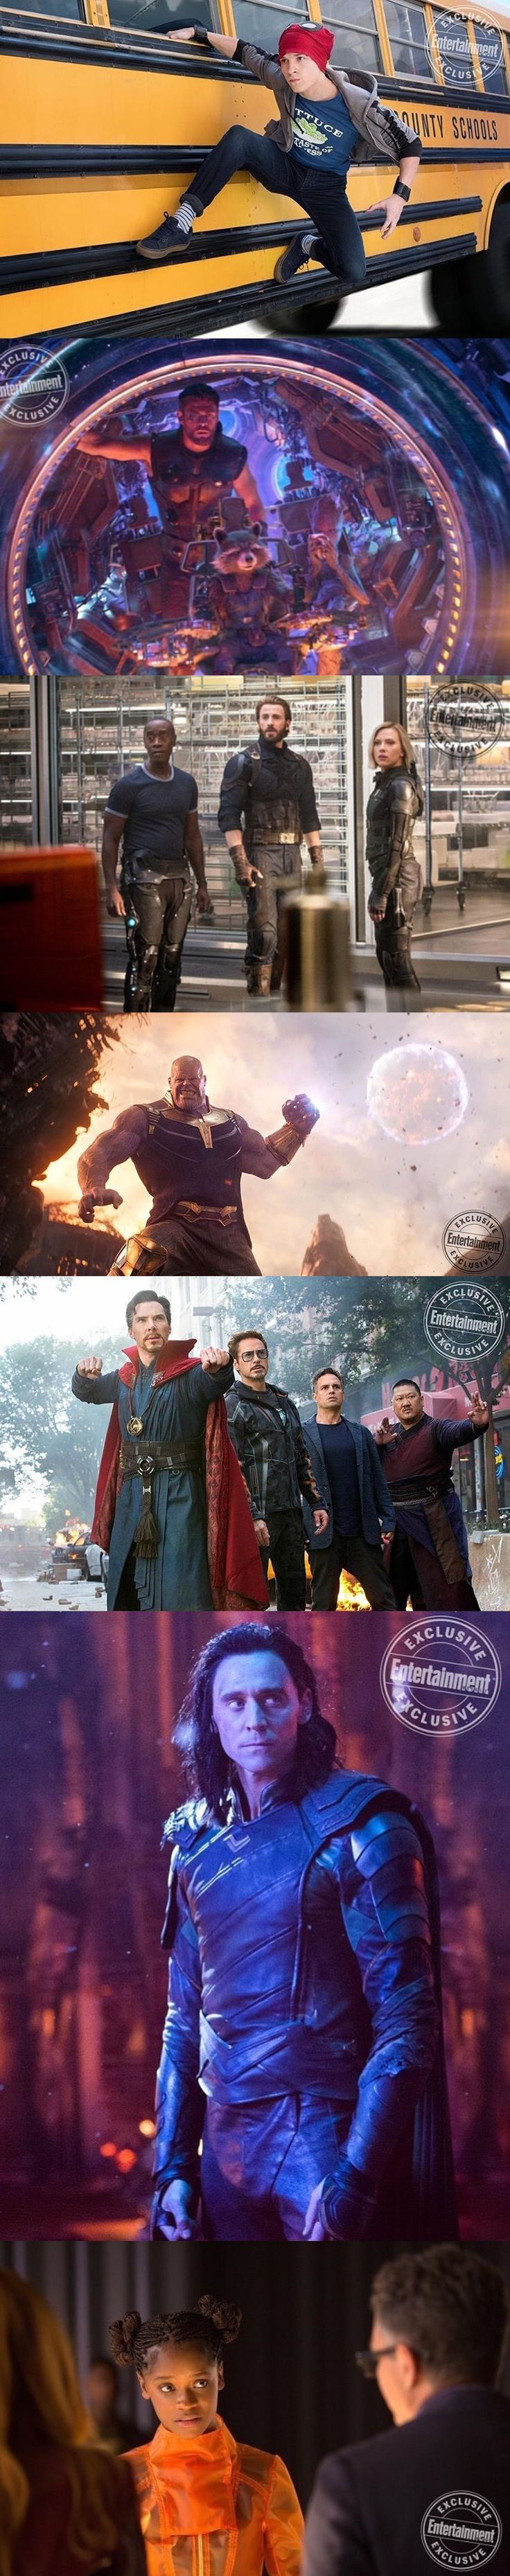 New stills from Avengers: Infinity War